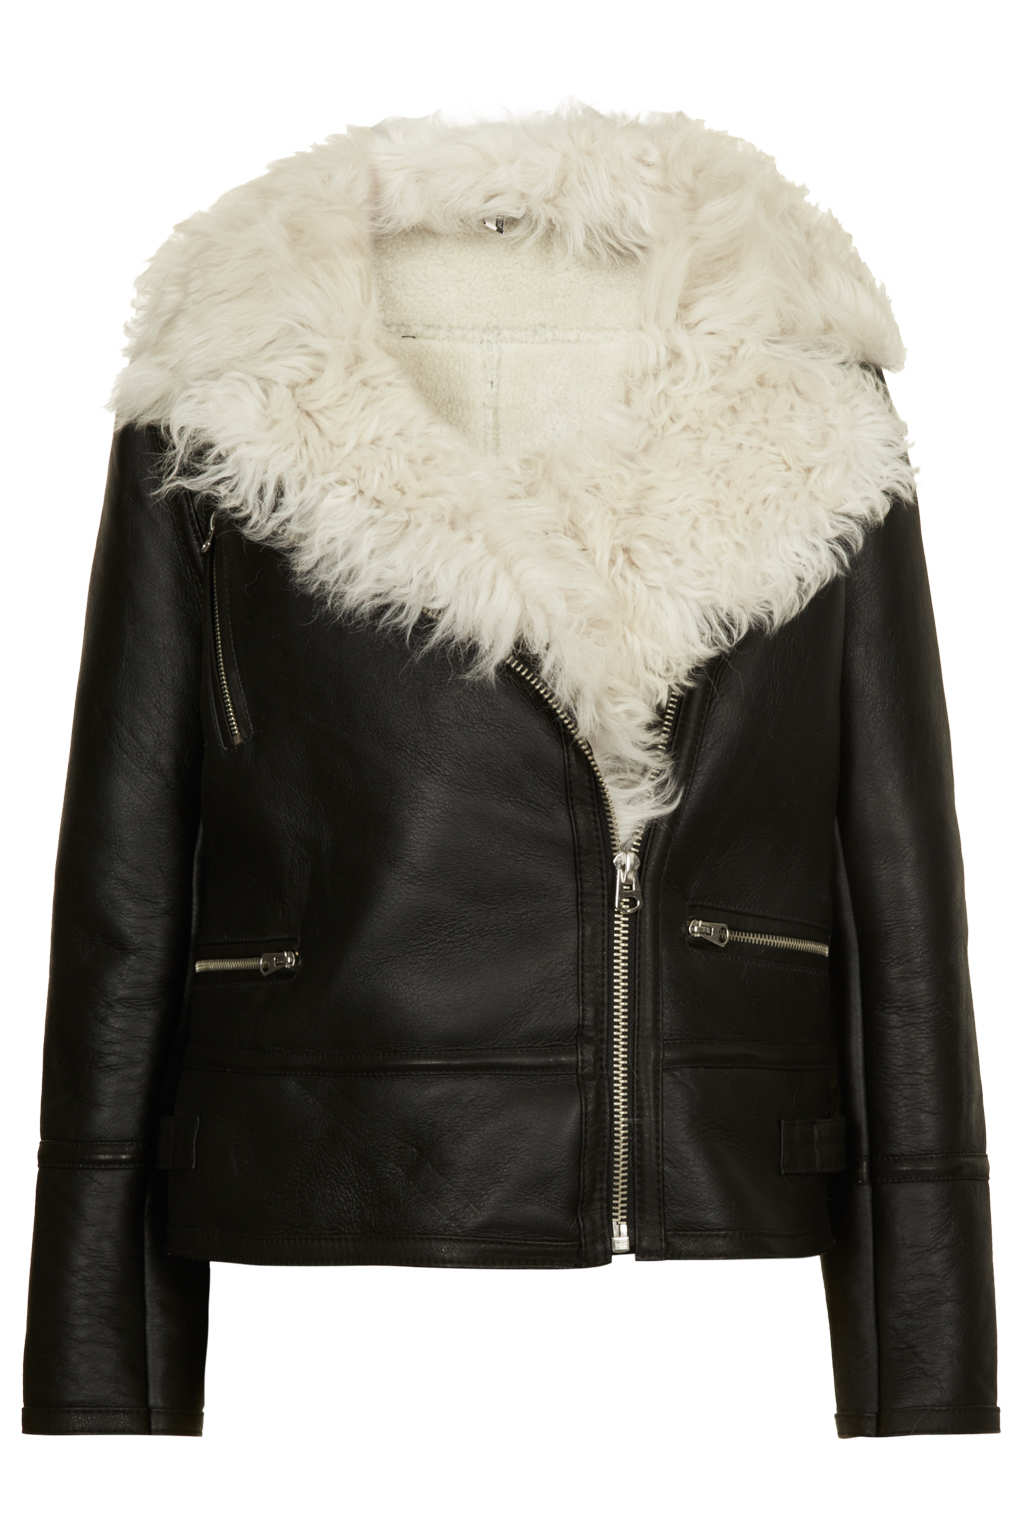 Topshop Curly Sheepskin Biker Jacket in Black | Lyst